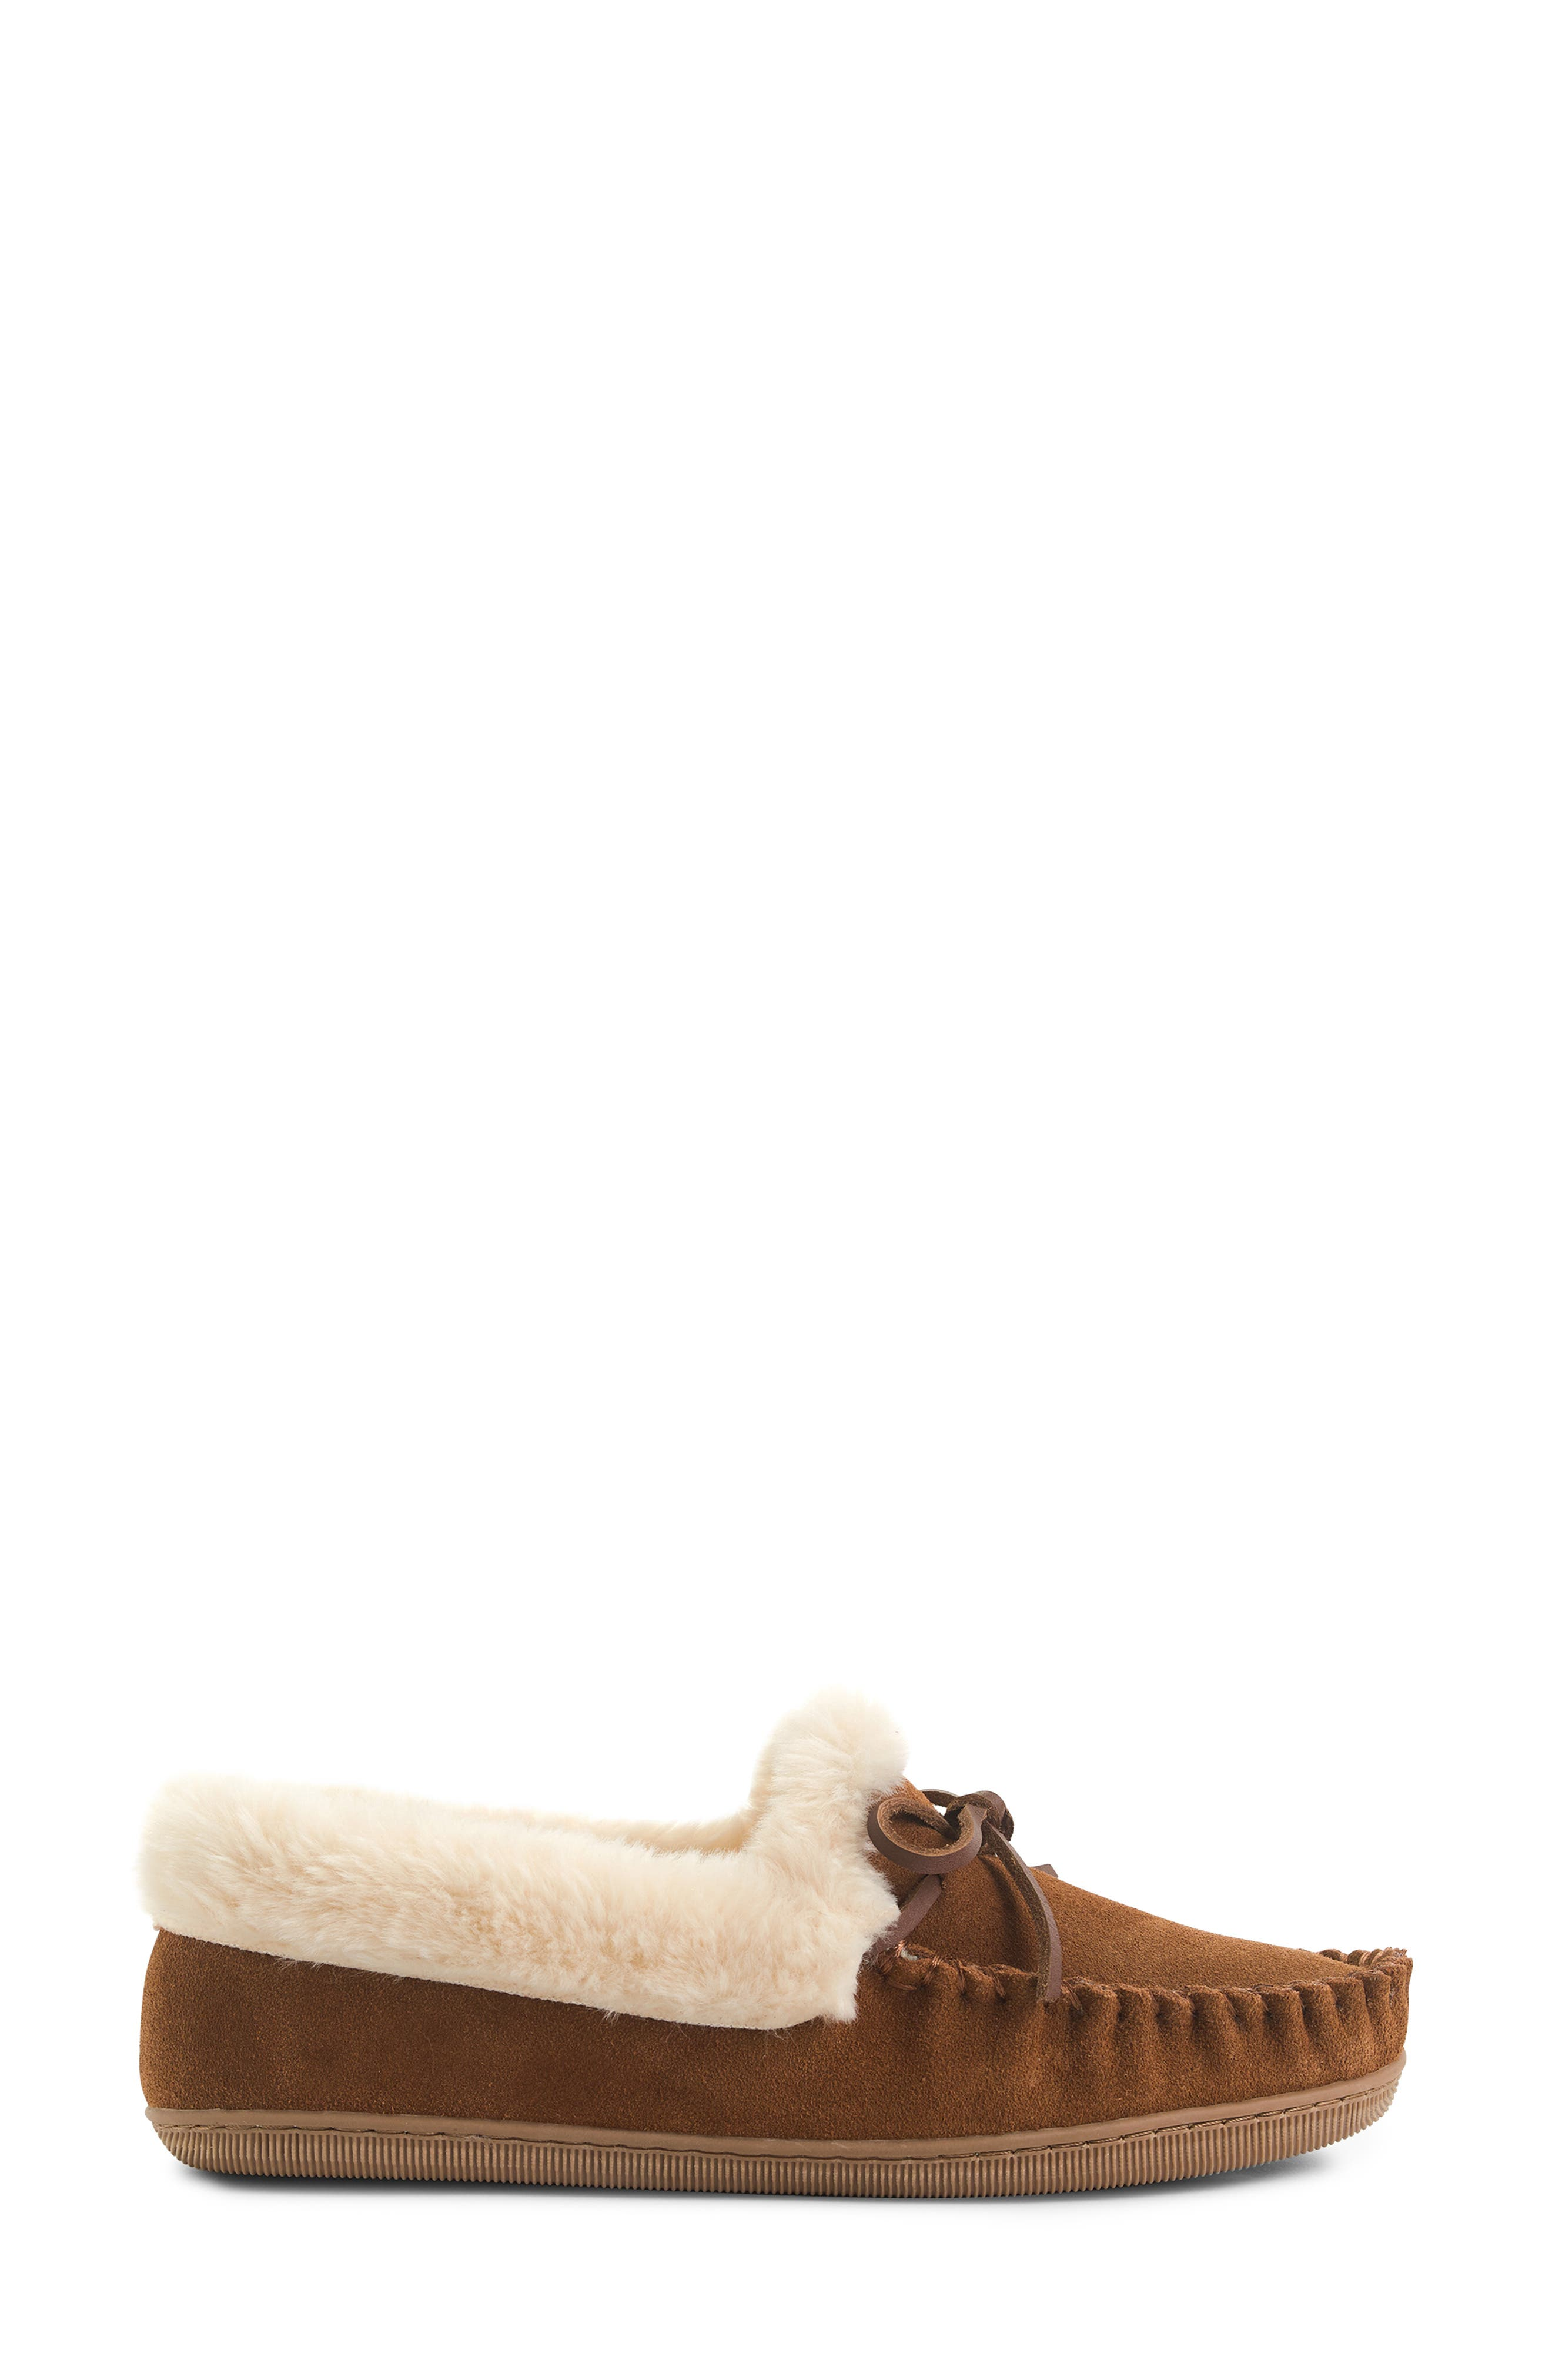 J.CREW,                             Lodge Faux Shearling Moccasin,                             Main thumbnail 1, color,                             DARK NUTMEG LEATHER